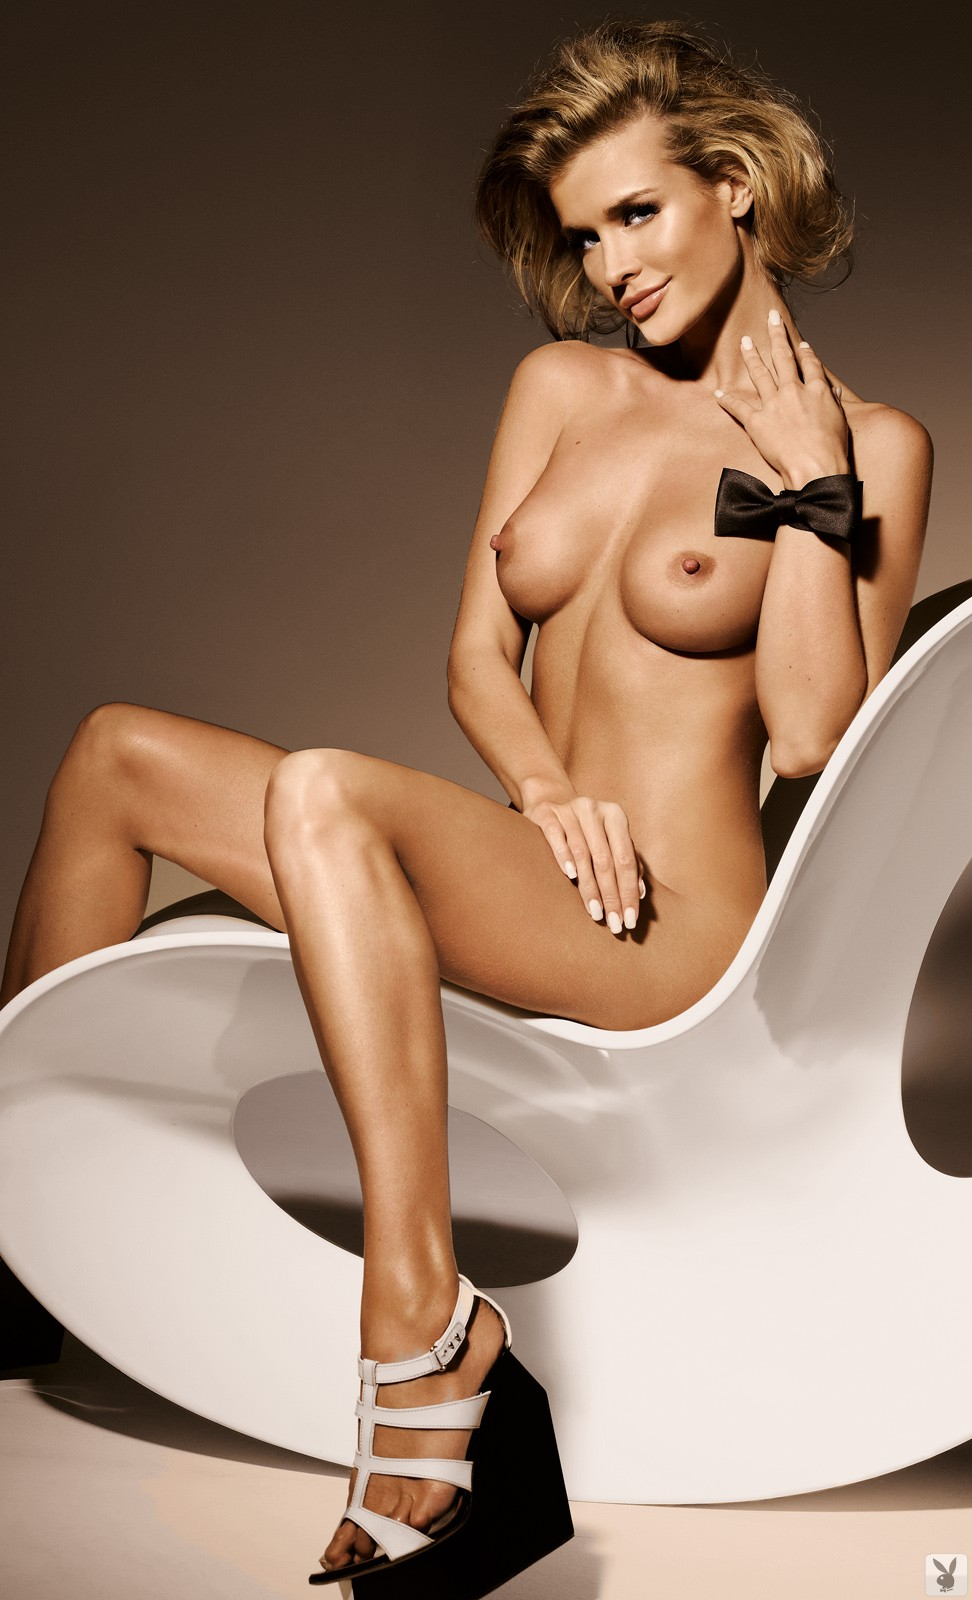 joanna krupa nude playboy 02 Show this thumbs only if we have it (example of 'if' statement)